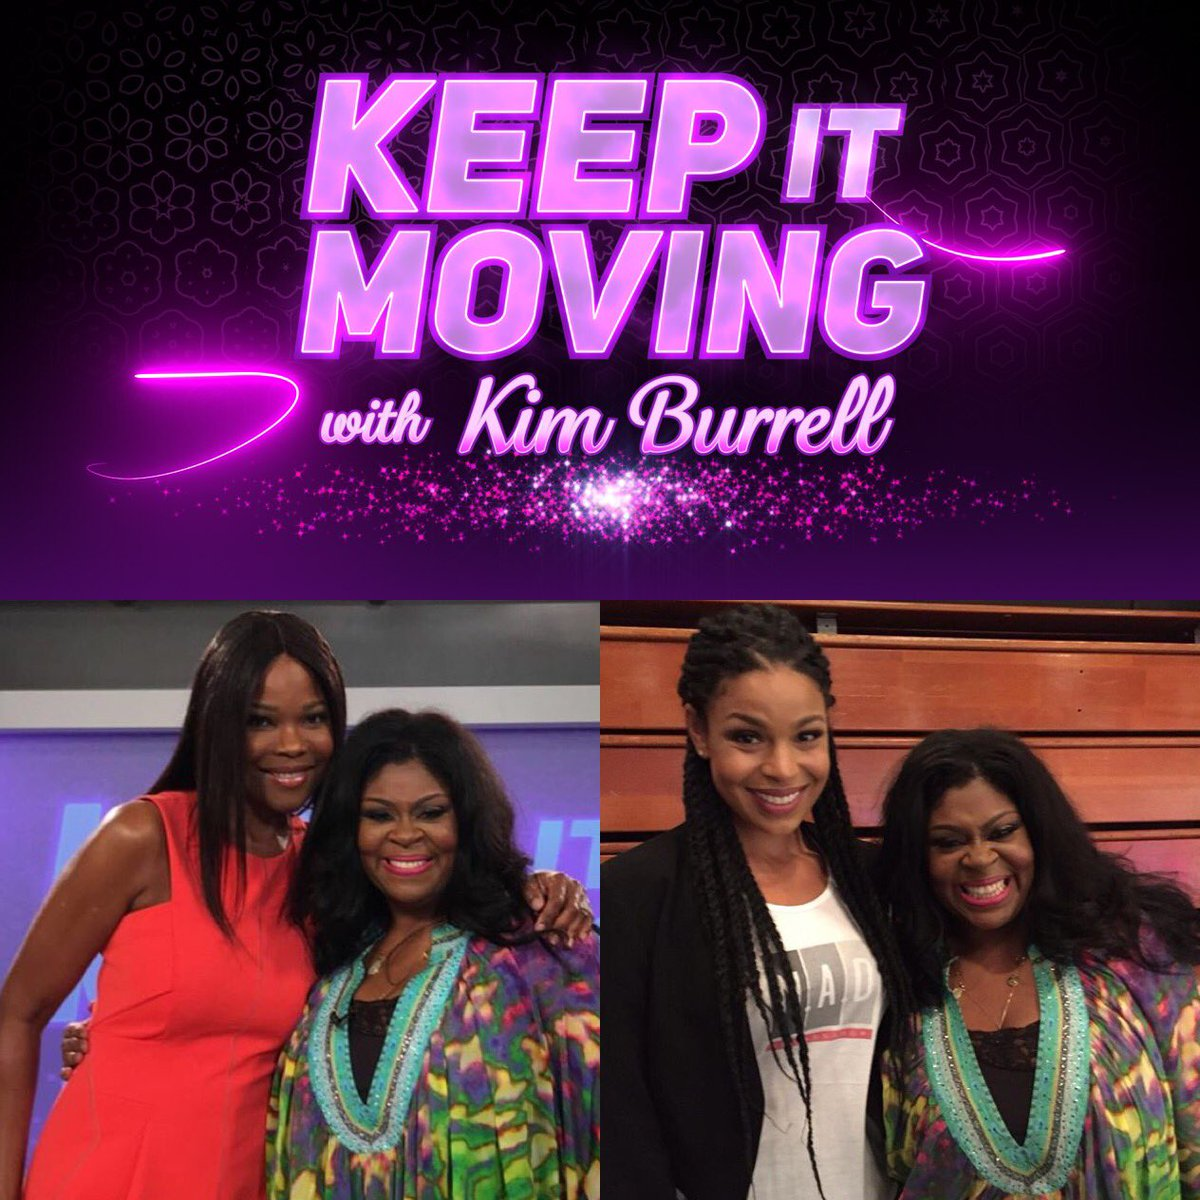 @KimBurrellLove's Talk Show airs 9/16 1:30pm & 9/17 12:30pm on @CW39Houston with @AngelaRobsChild & @JordinSparks!